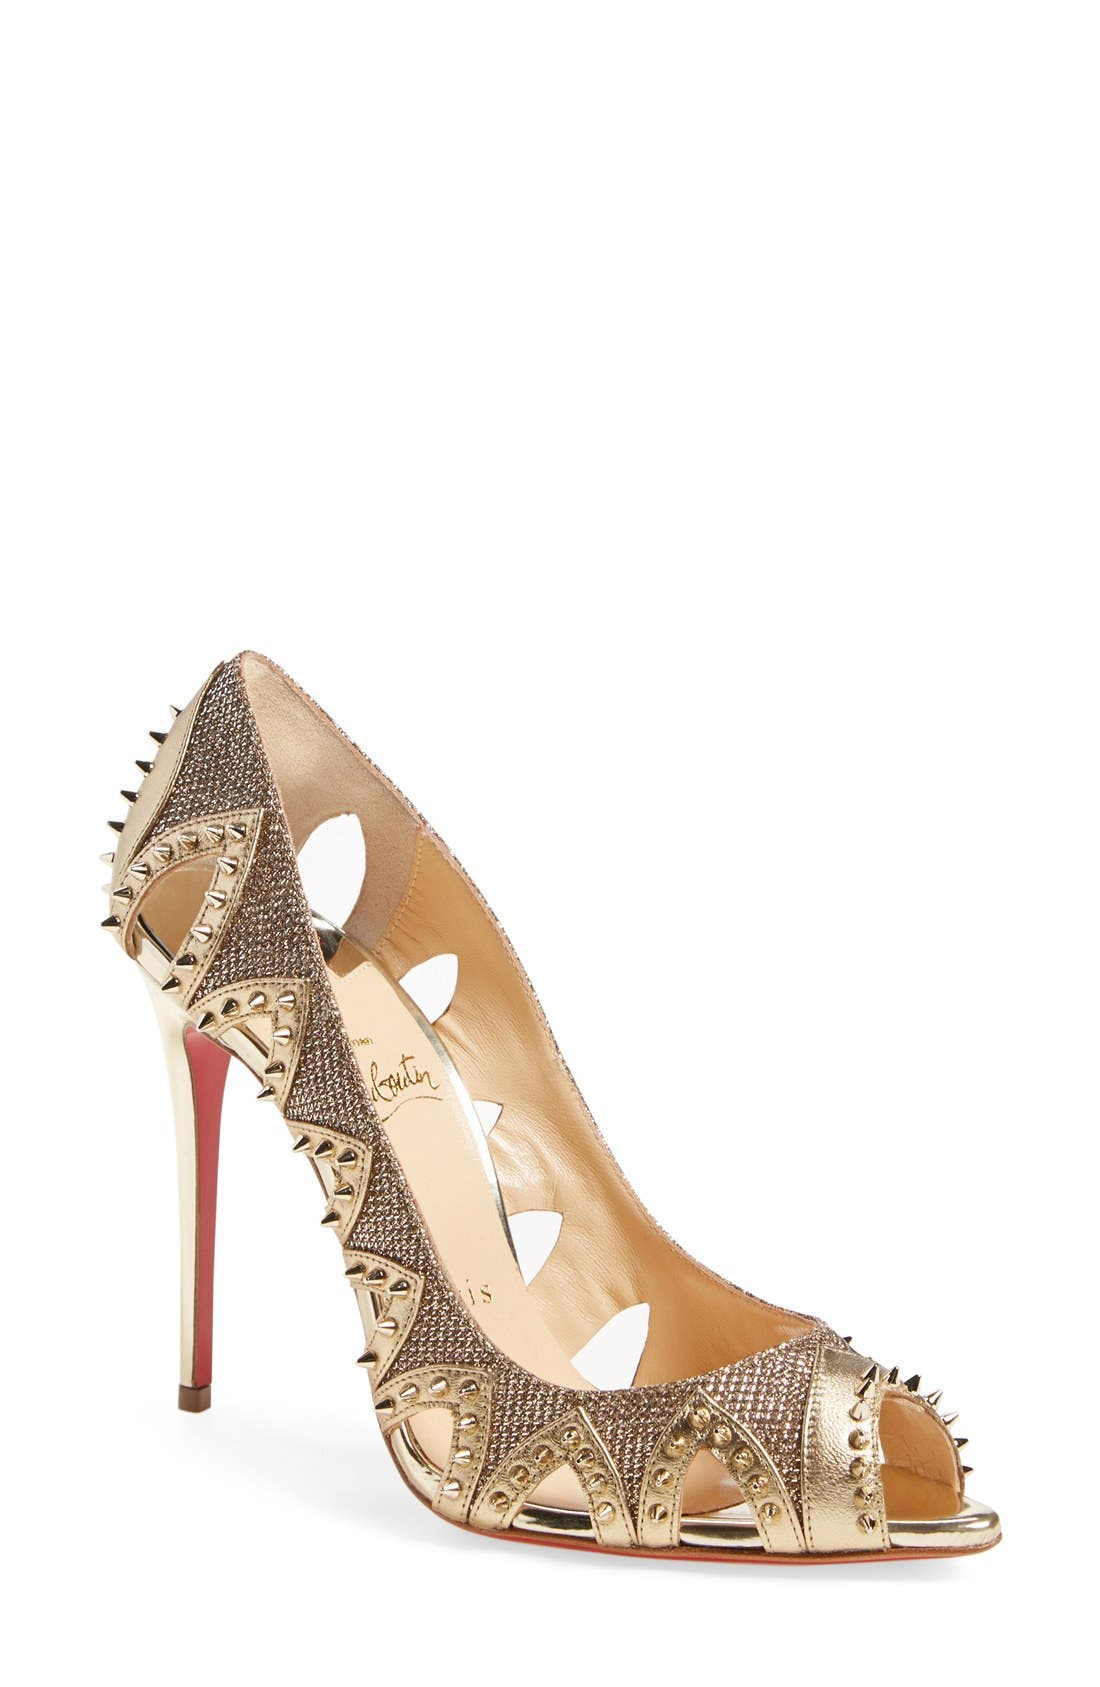 Alternate Image 1 Selected - Christian Louboutin 'Pinder City' Peep Toe Pump